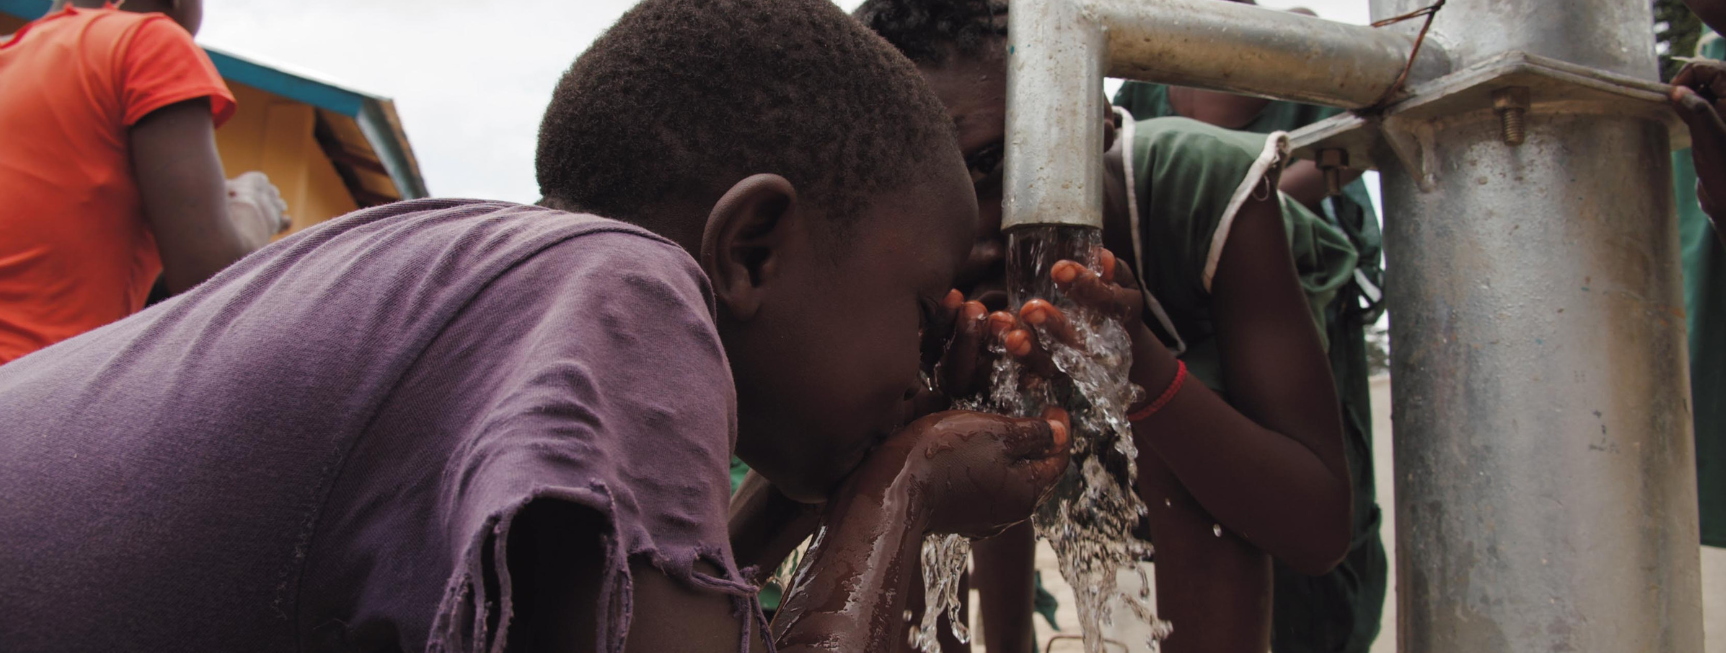 An image of an African child drinking clean water from a water pump. The child is cupping their hands together and bringing the water to her mouth.